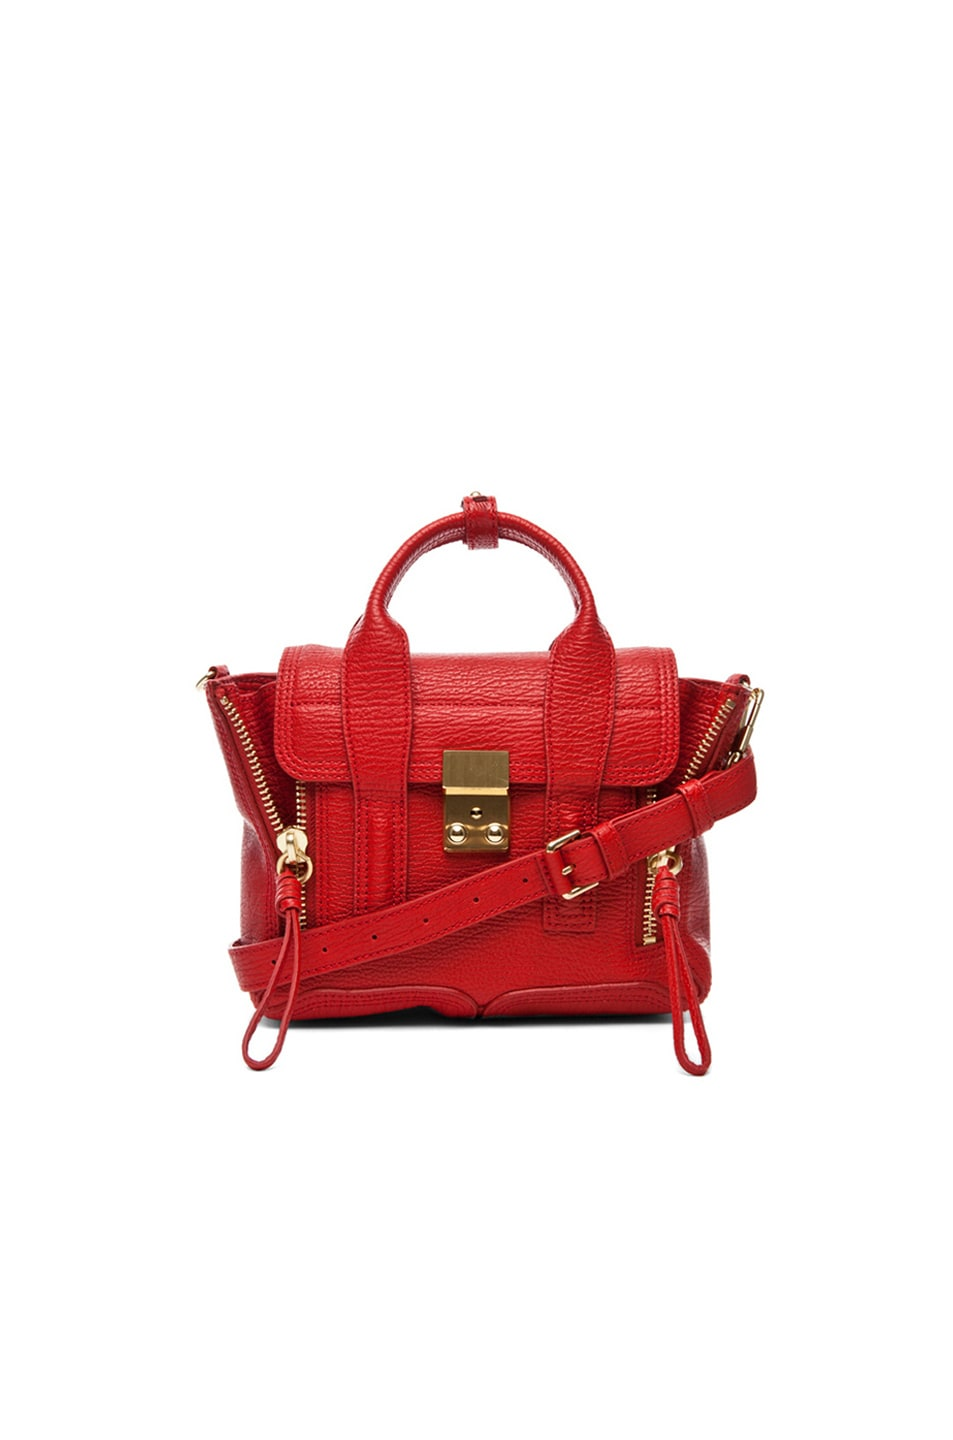 Image 1 of 3.1 phillip lim Mini Pashli Satchel in Red